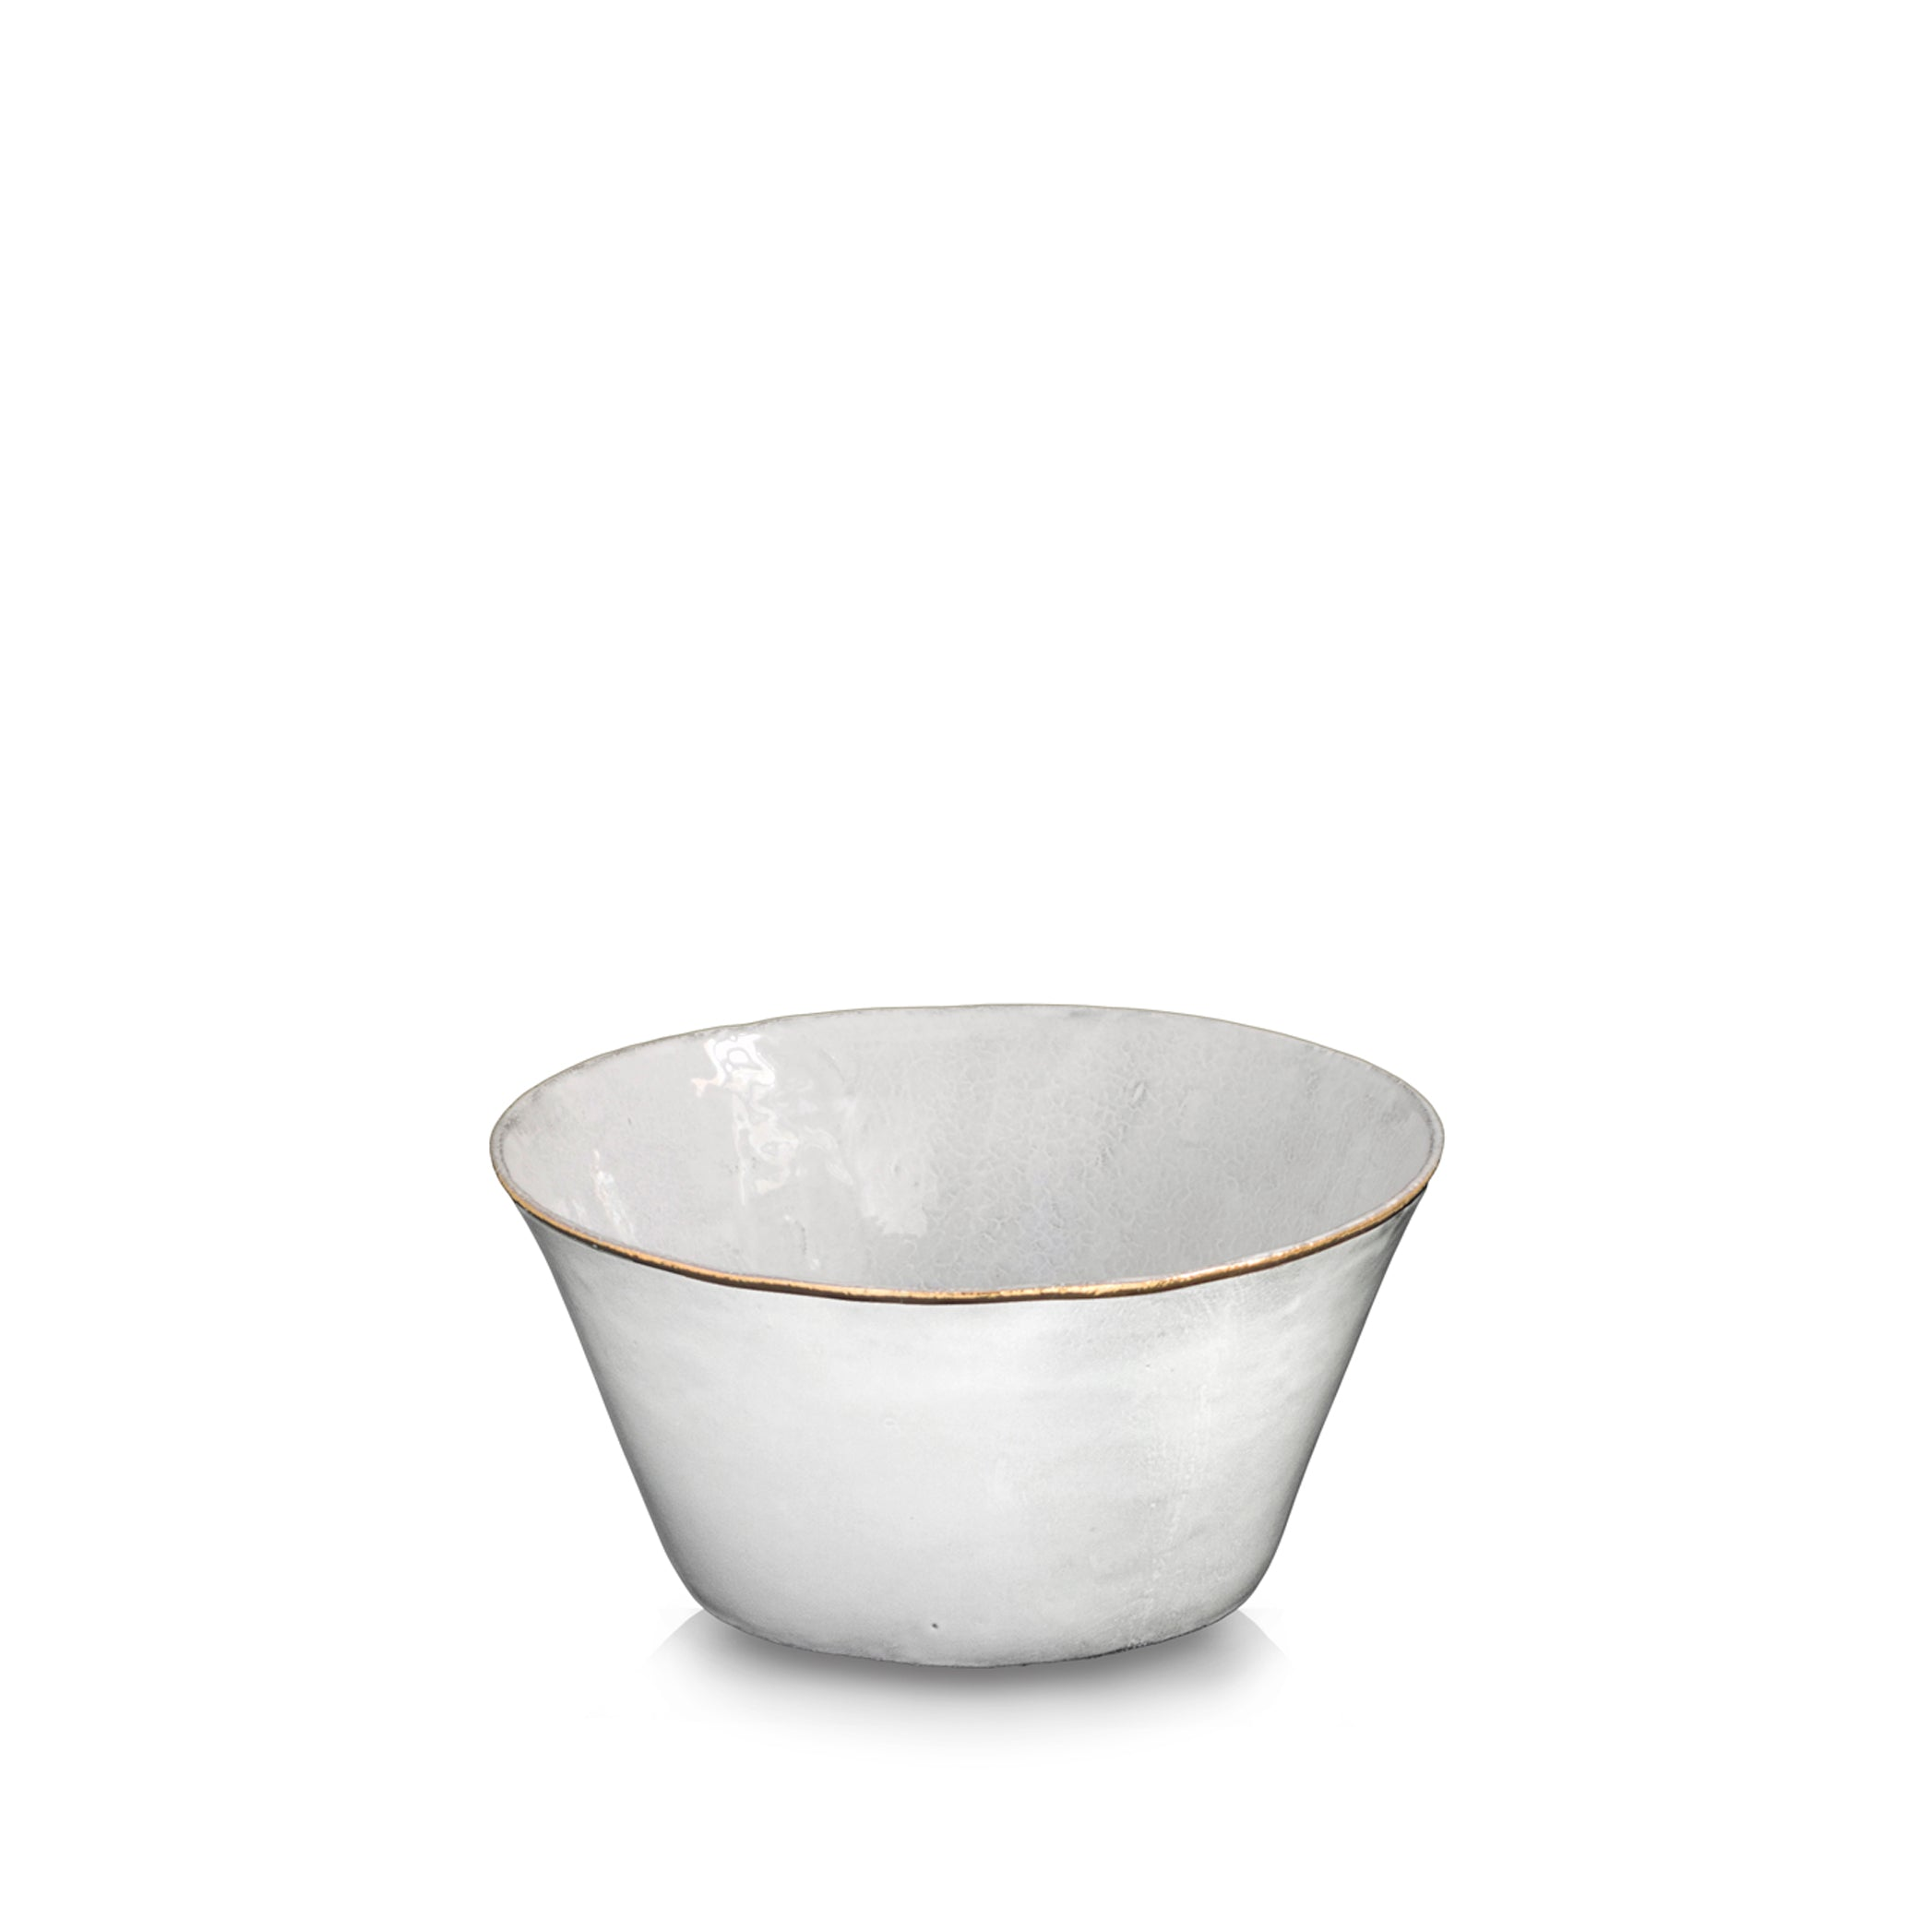 Crésus Salad Bowl with Gold Rim by Astier de Villatte